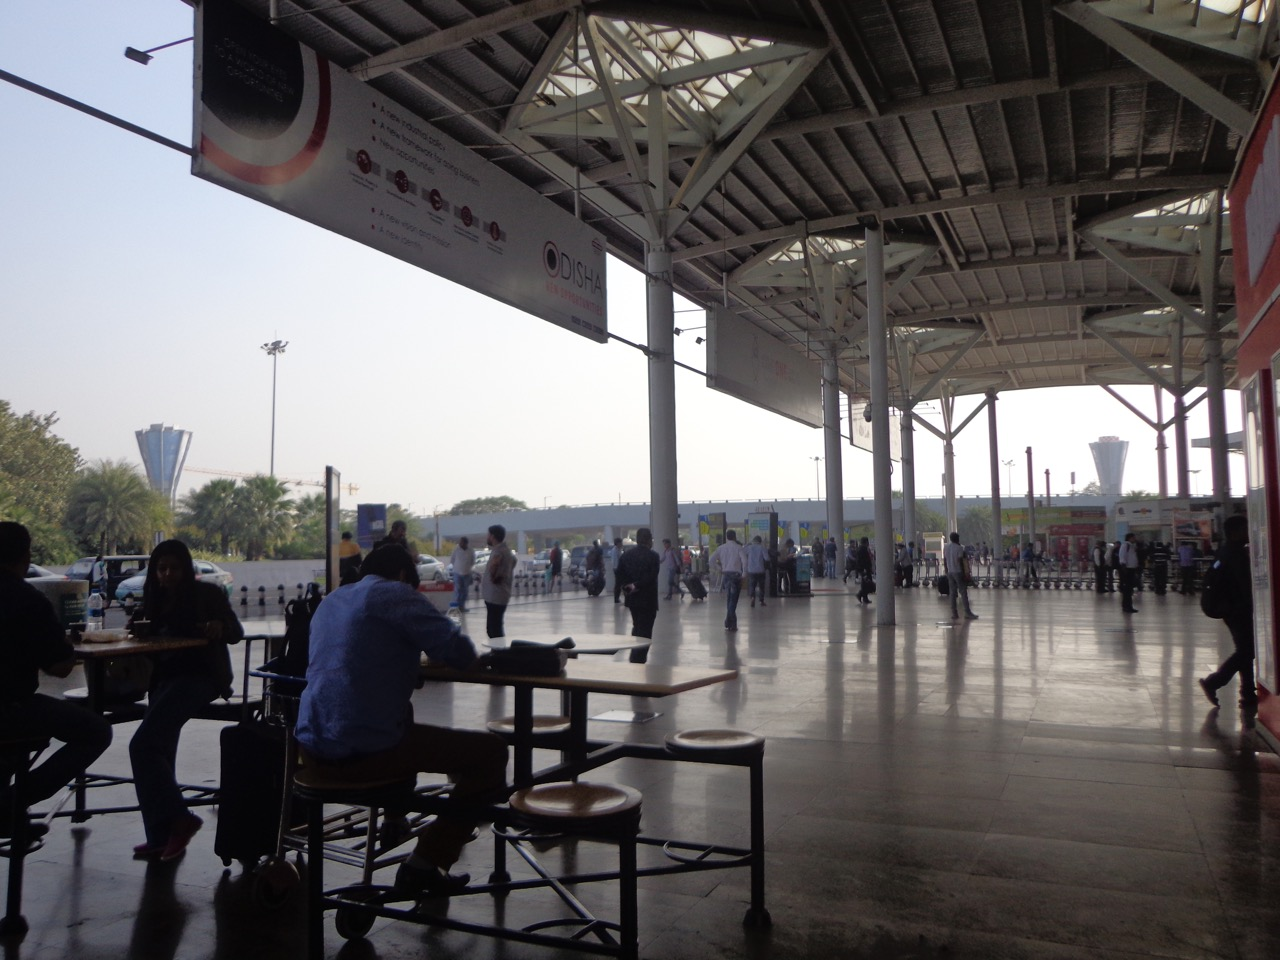 Delhi T1 Terminal, where I had my lunch.